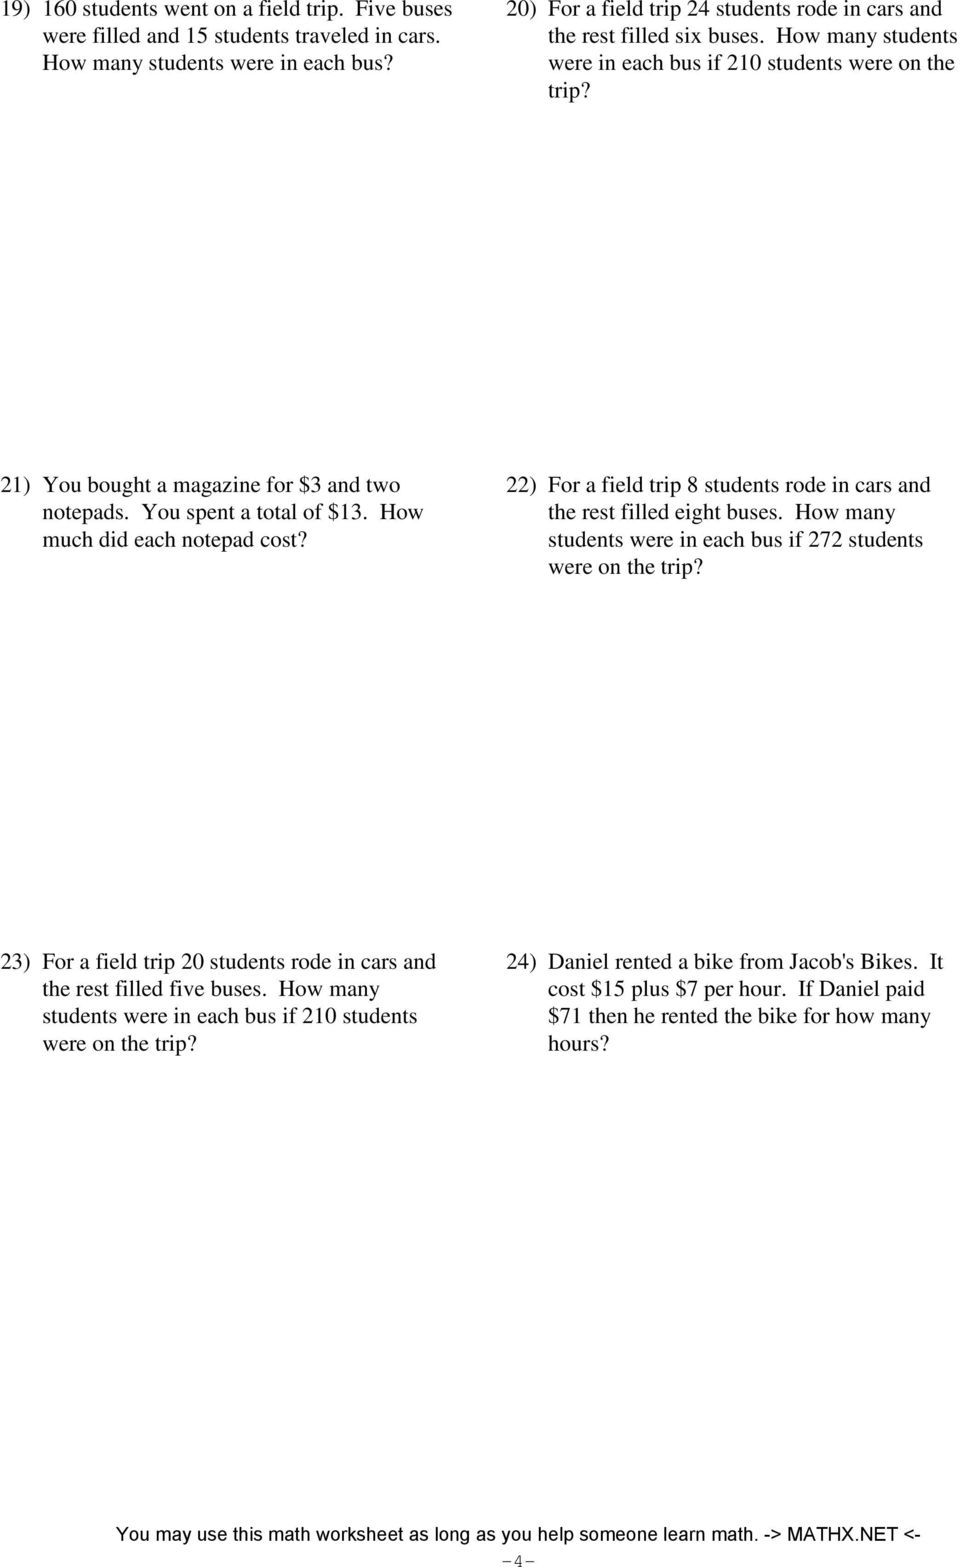 hight resolution of Two-step equations - word problems - integers - PDF Free Download